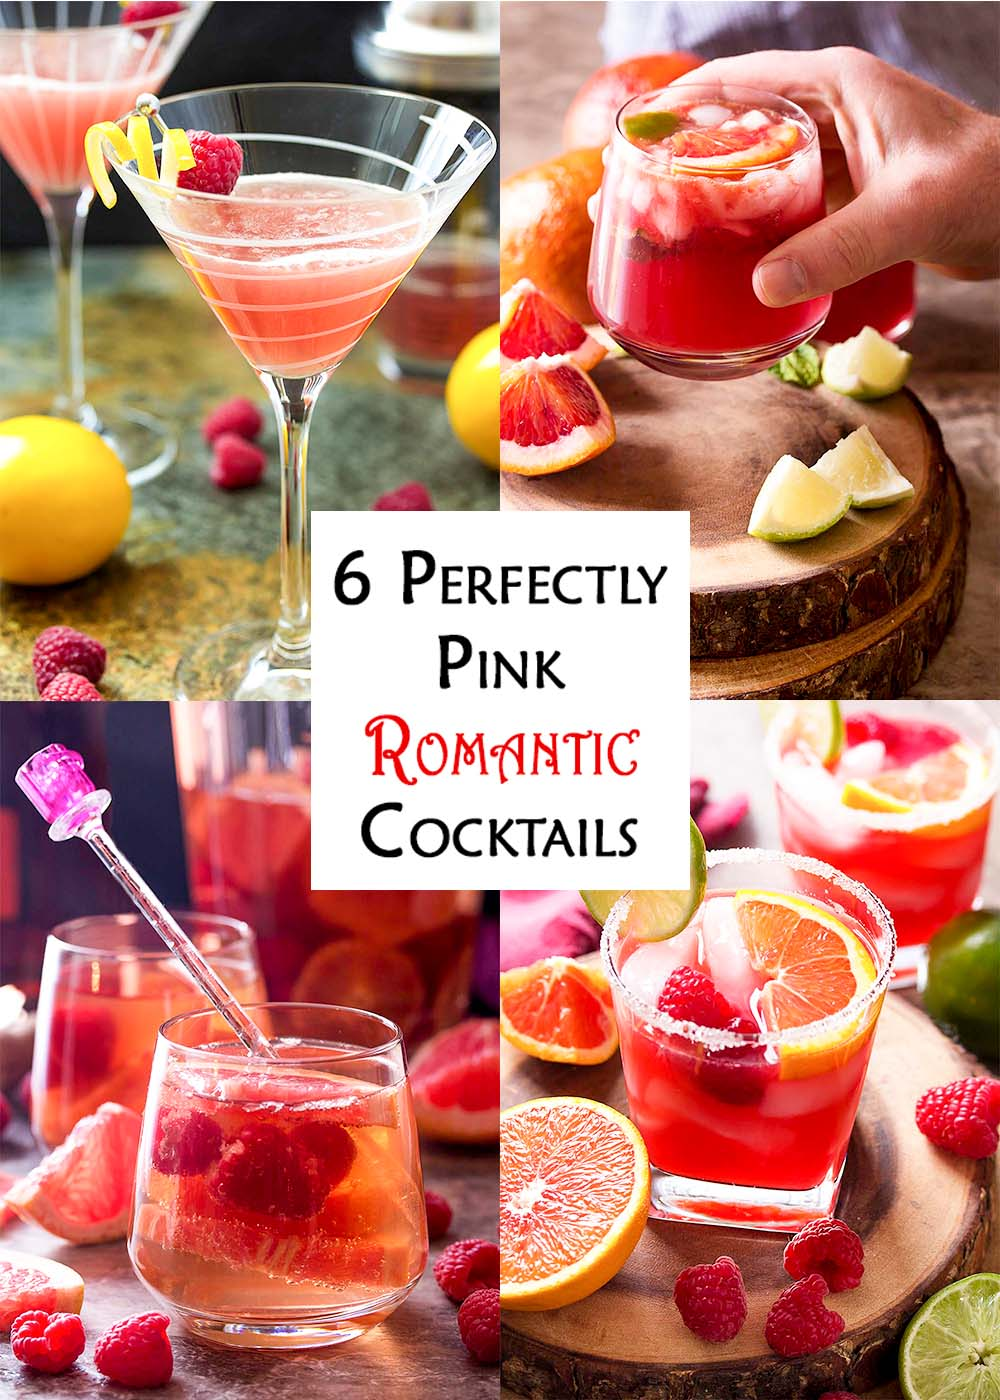 Perfectly Pink Romantic Cocktails for Valentine's Day Cover Image